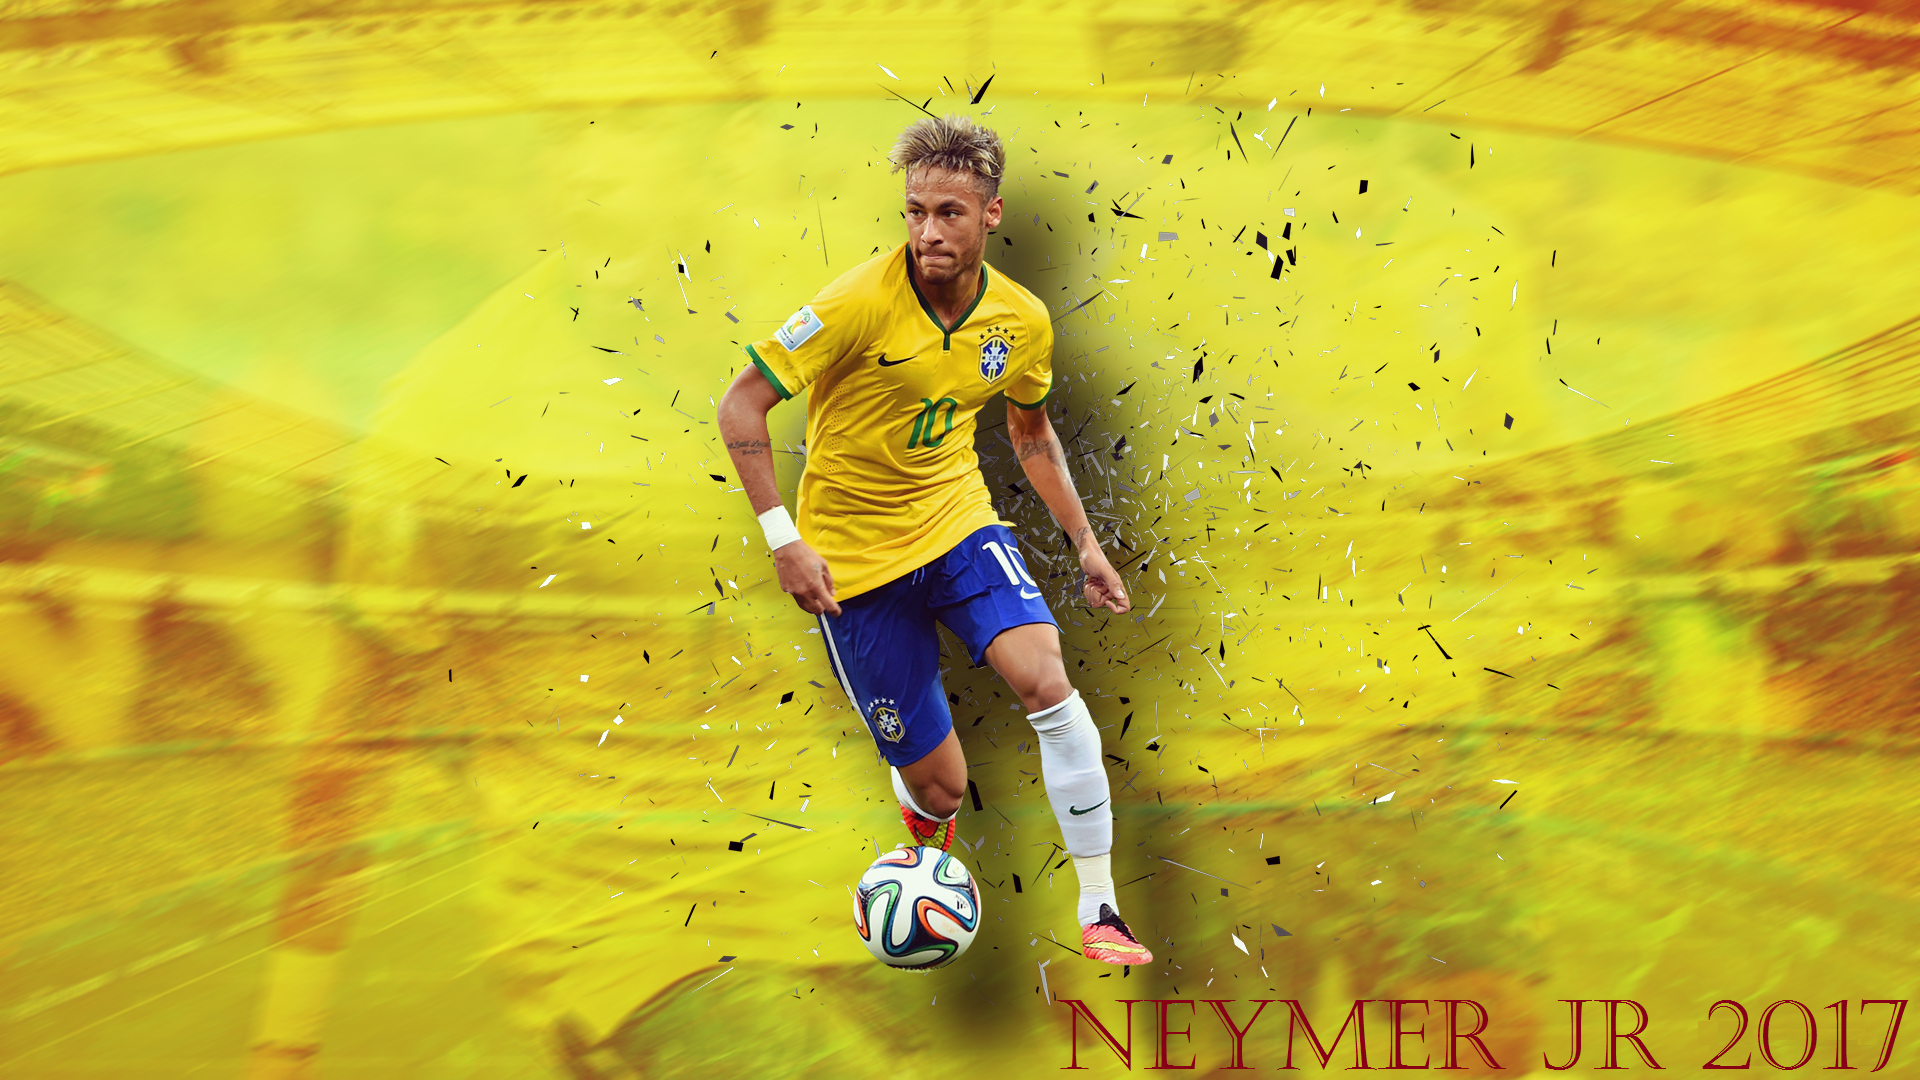 Cute Neymar Football Soccer Player Hd Free Play With Ball Mobile Bakground Desktop Pics